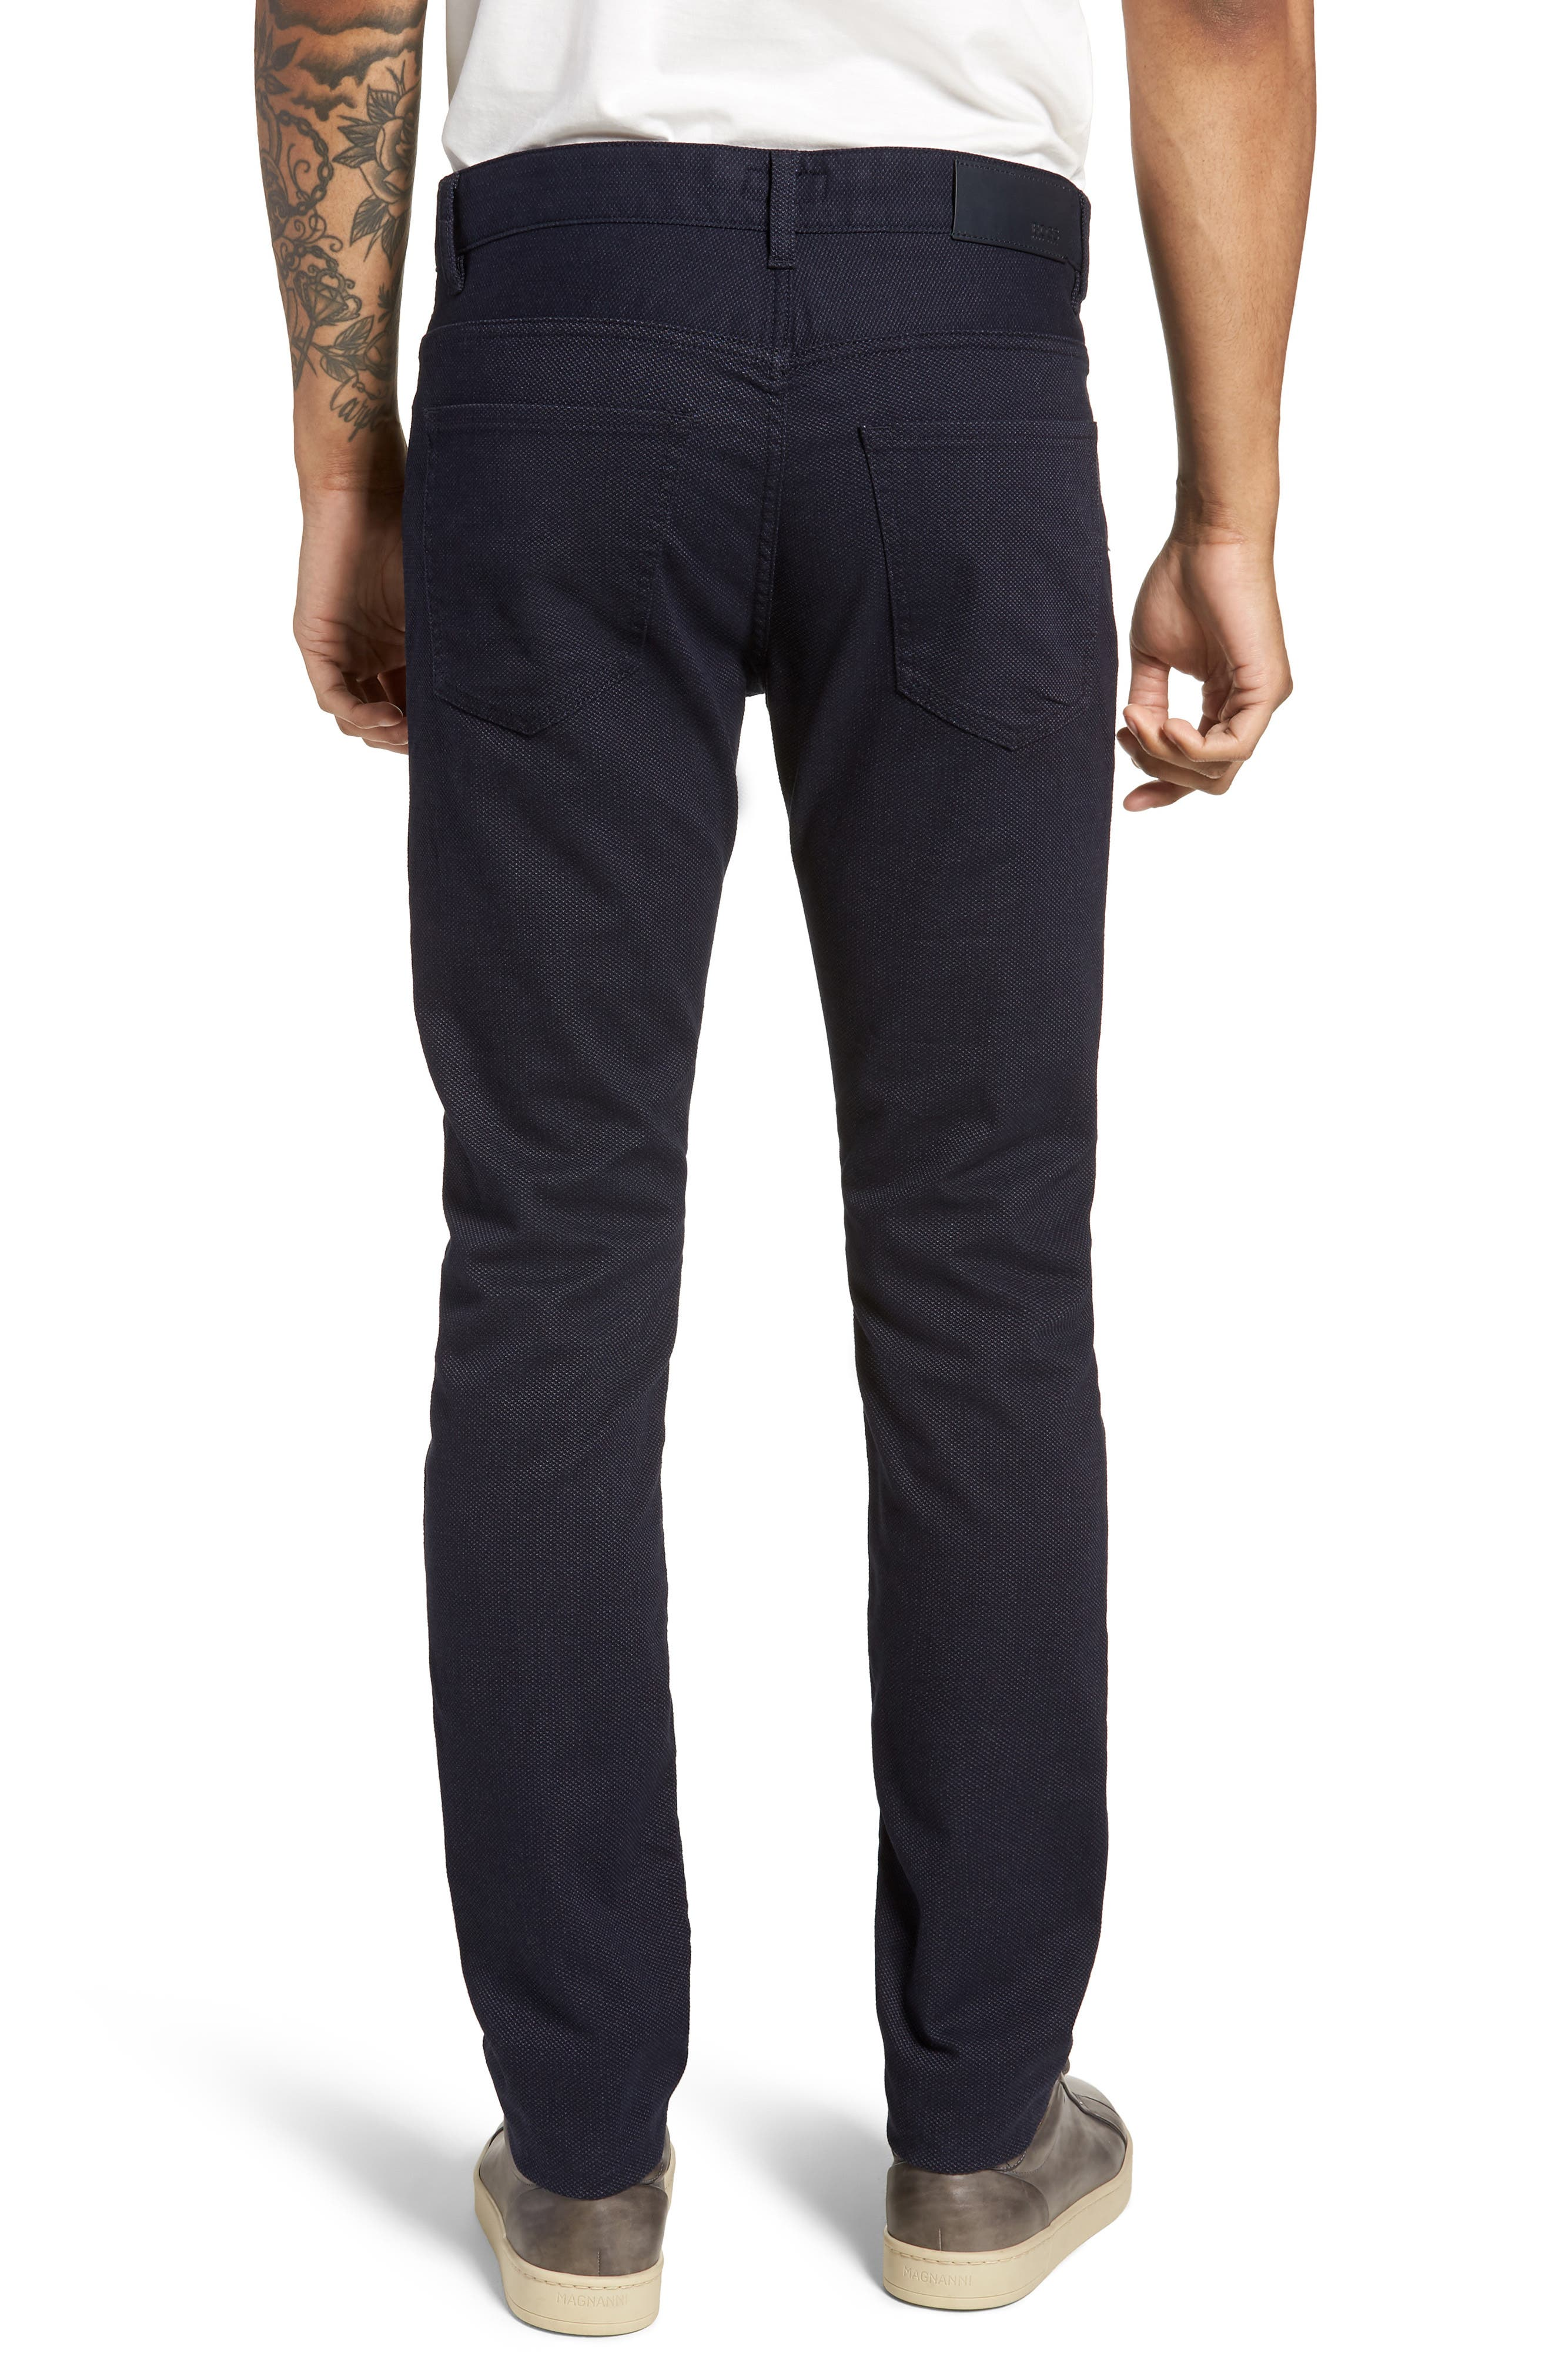 Delaware Slim Fit Jeans,                             Alternate thumbnail 2, color,                             NAVY